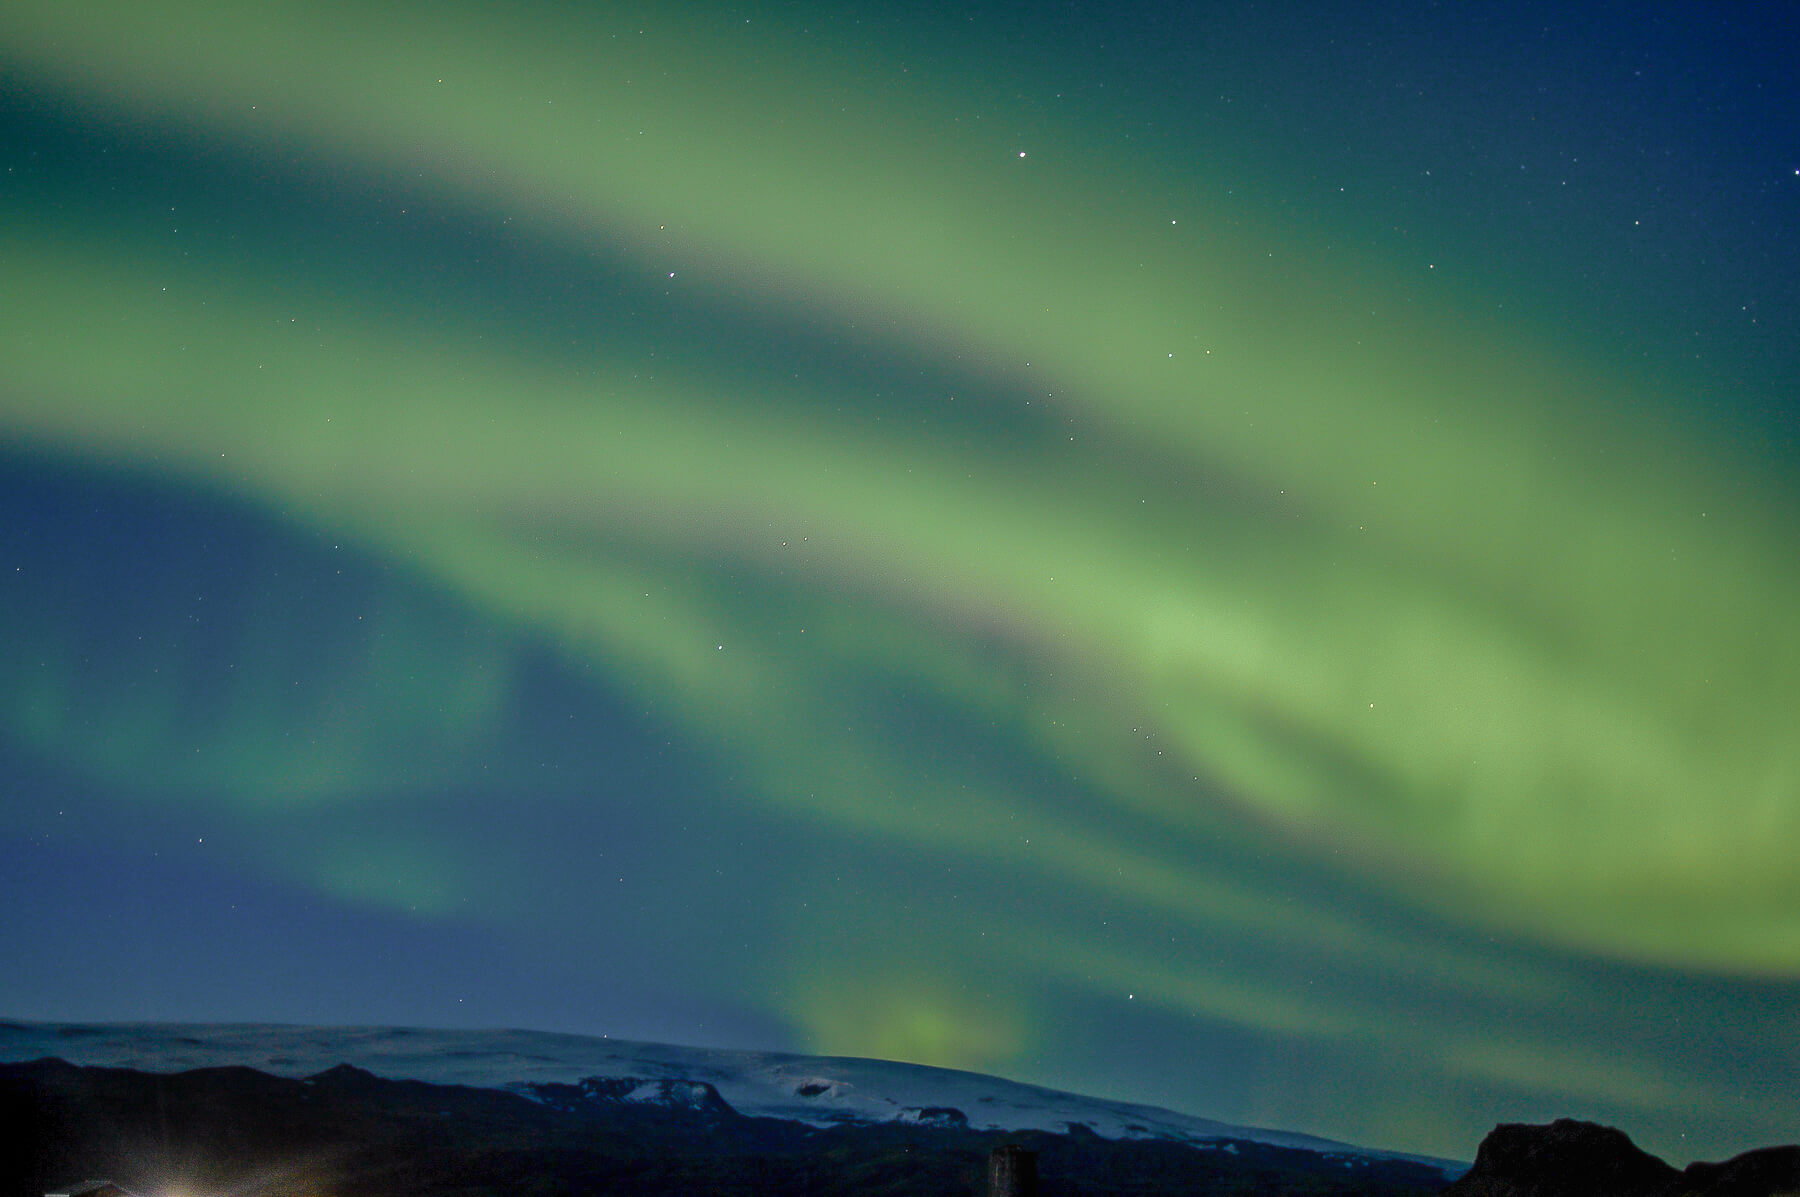 Green and purple Northern Lights dancing across the sky above a Snowy Mountain